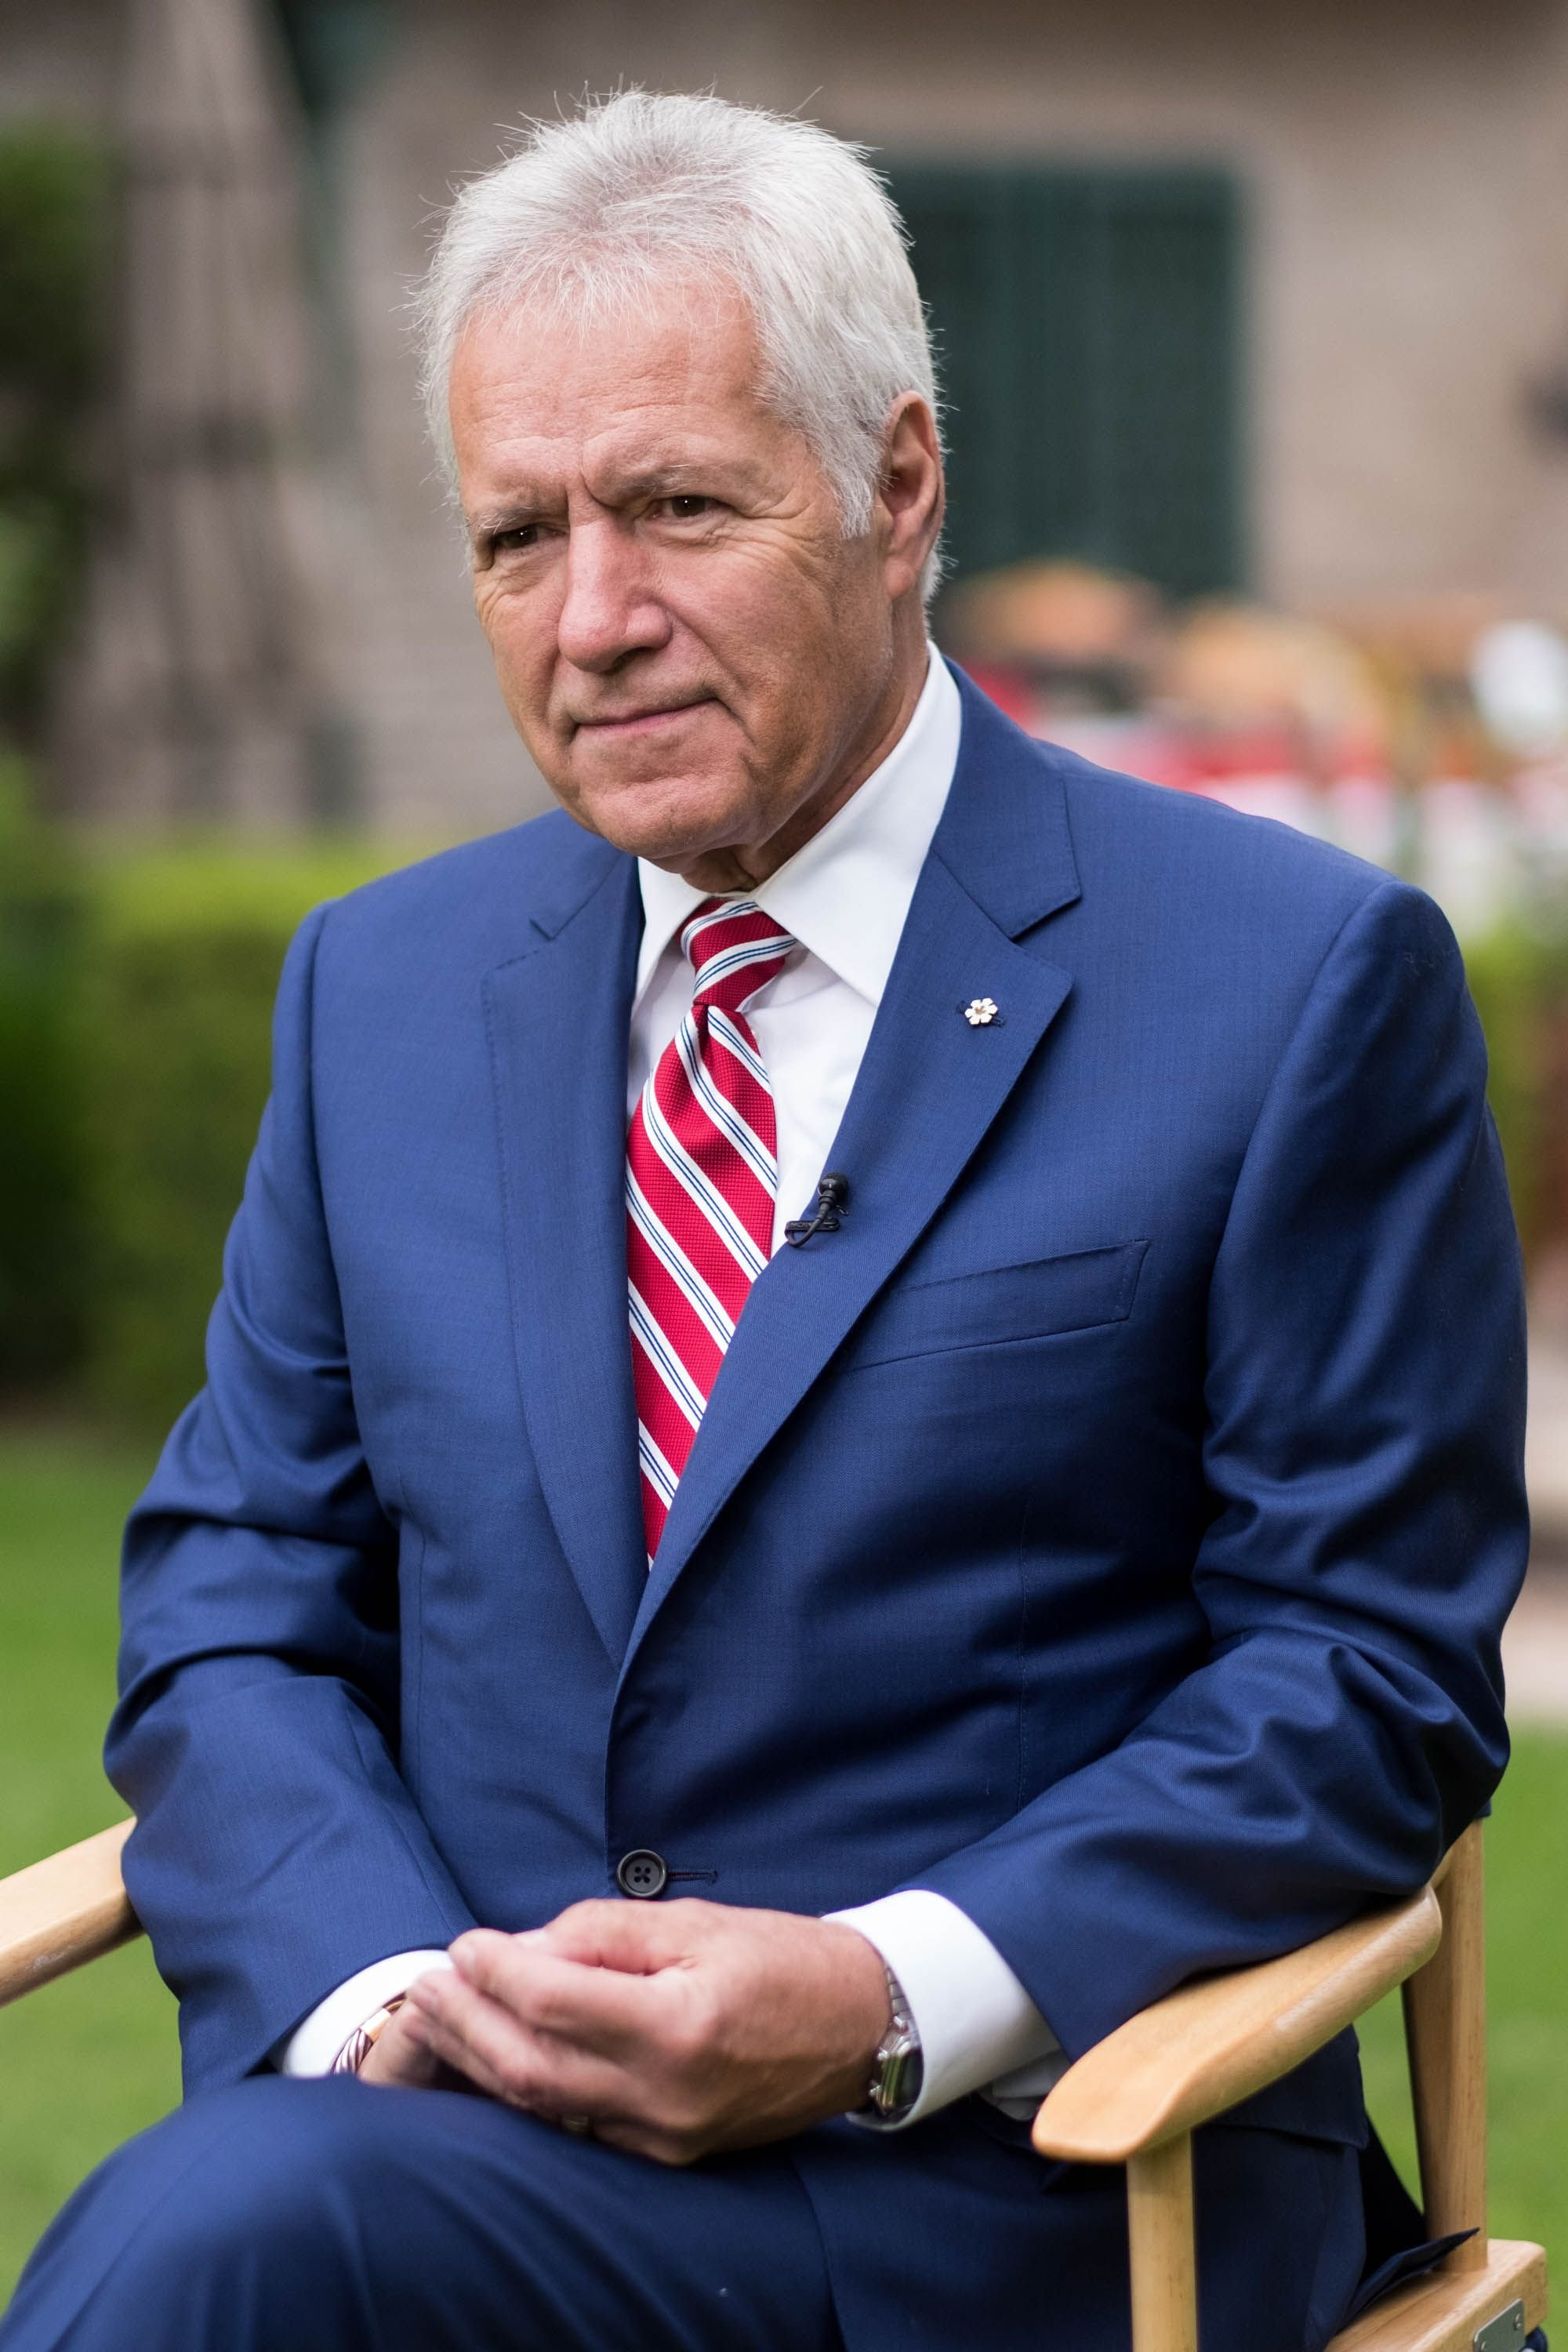 TV personality Alex Trebek at the 150th anniversary of Canada's Confederation at the Official Residence of Canada on June 30, 2017 | Photo: Getty Images